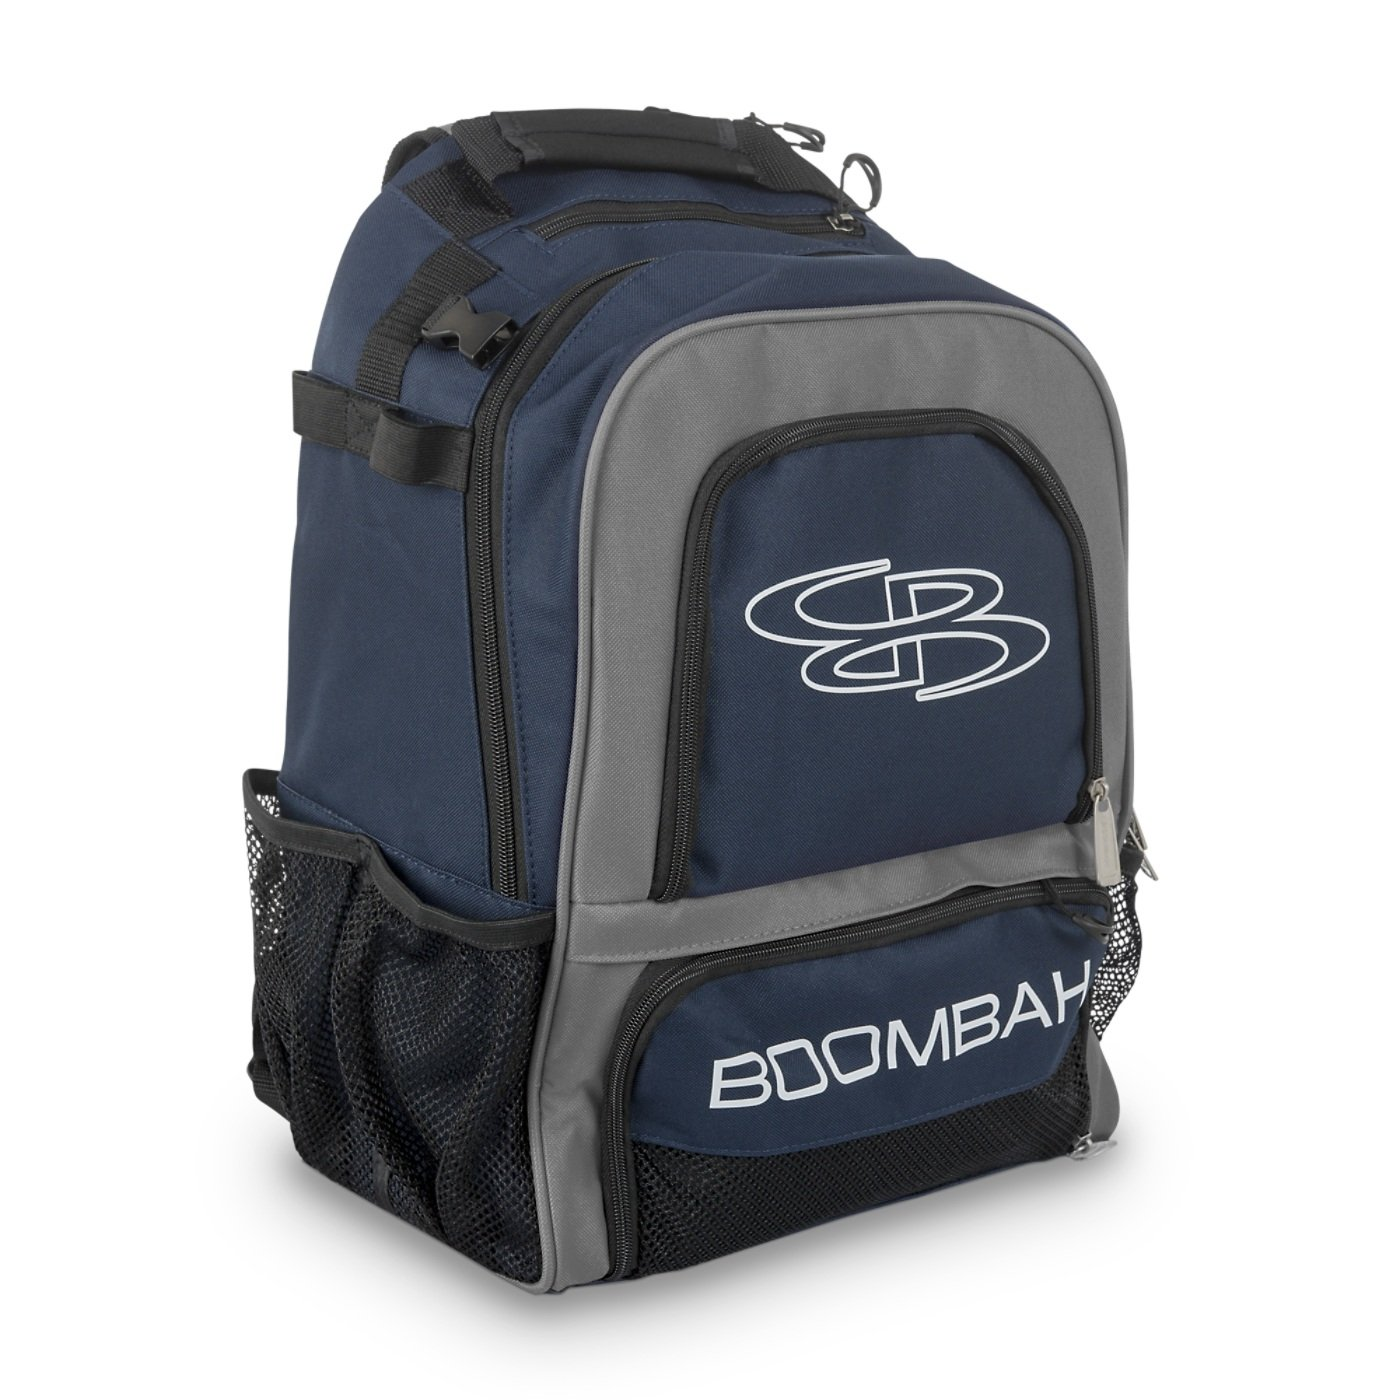 Boombah Wonderpack Baseball / Softball Batバックパック – 13